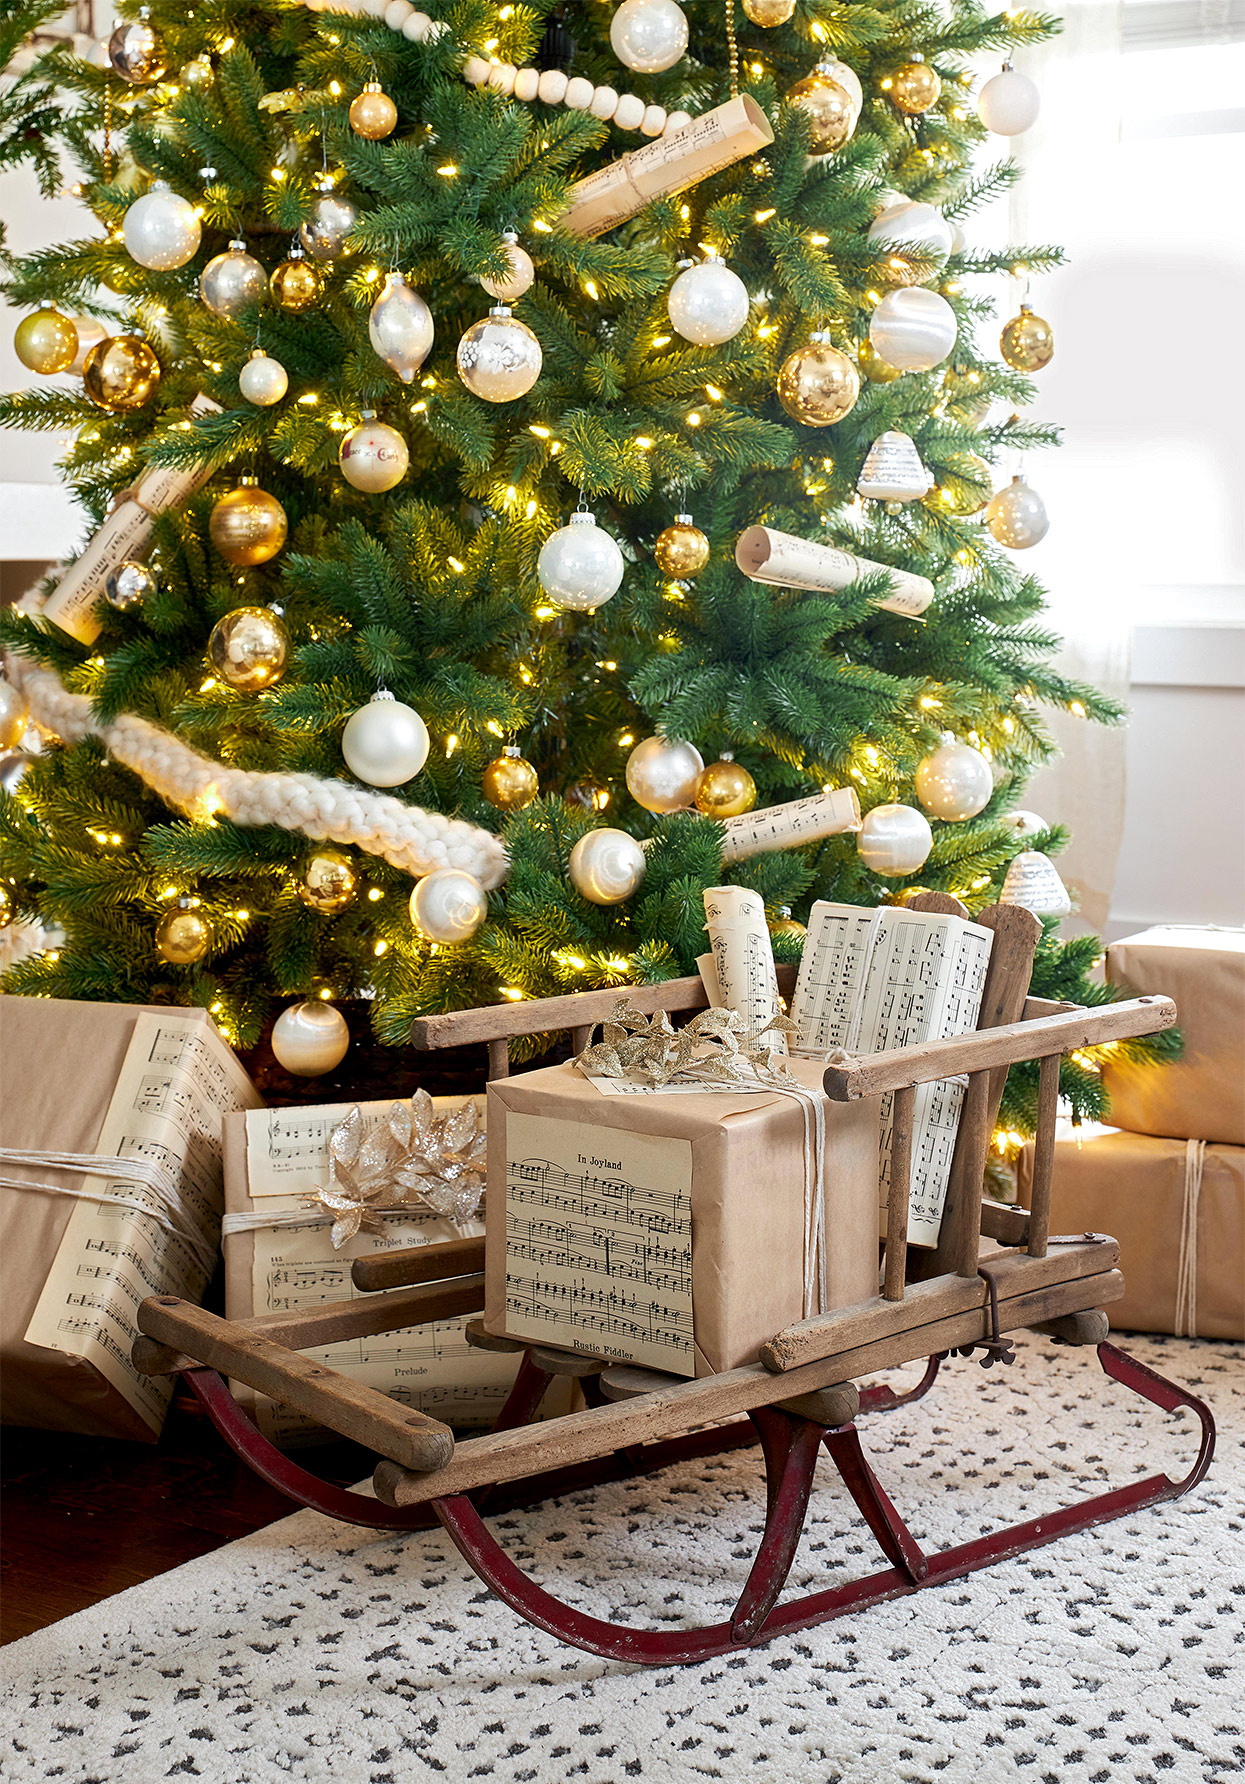 vintage sled with music-inspired gift wrap near tree